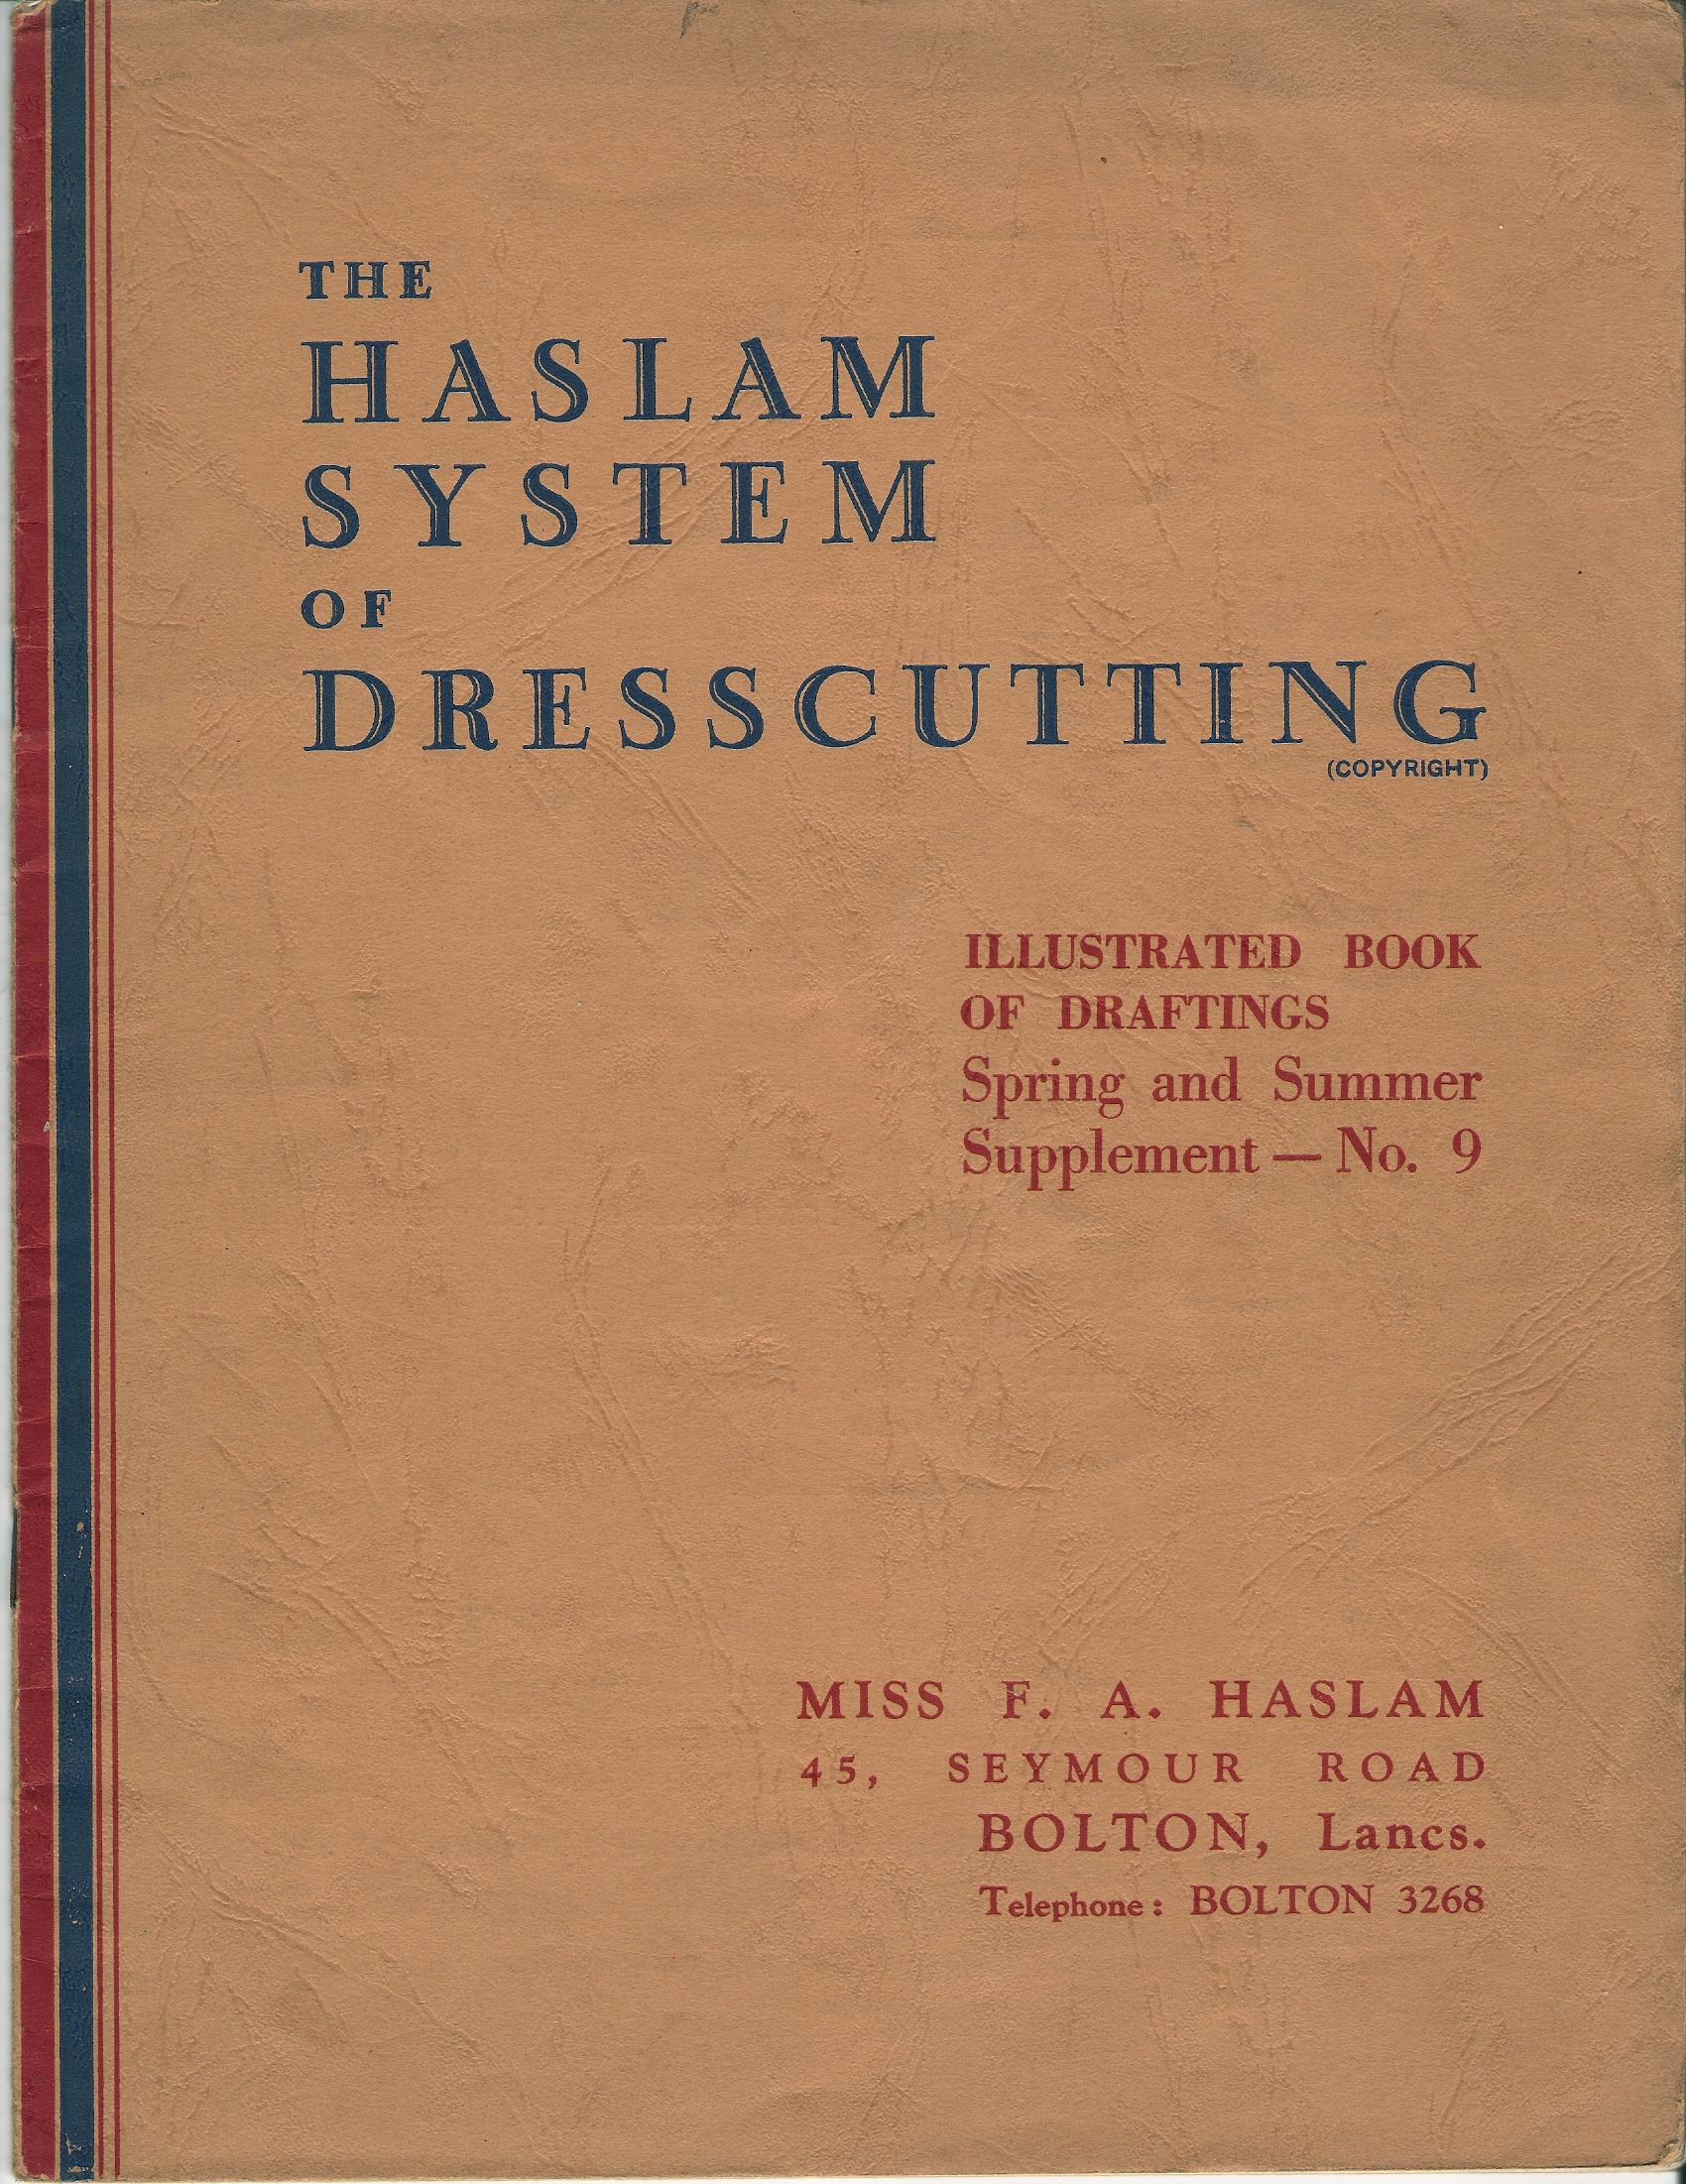 Haslam System of Dresscutting Spring and Summer Supplement No. 9